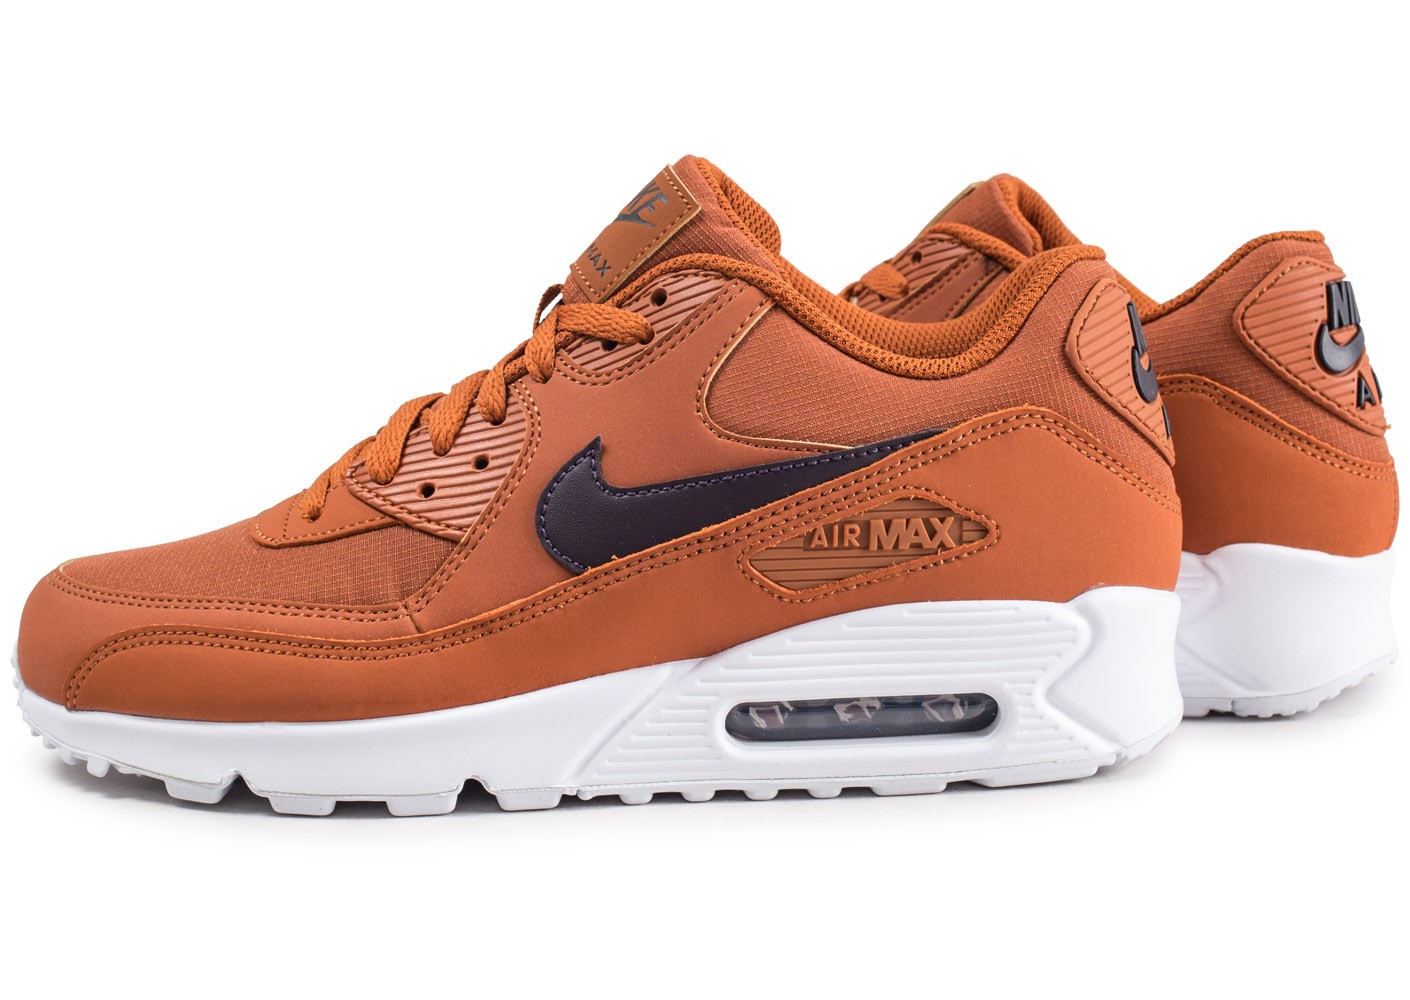 Nike Air Max 90 Essential marron Chaussures Baskets homme